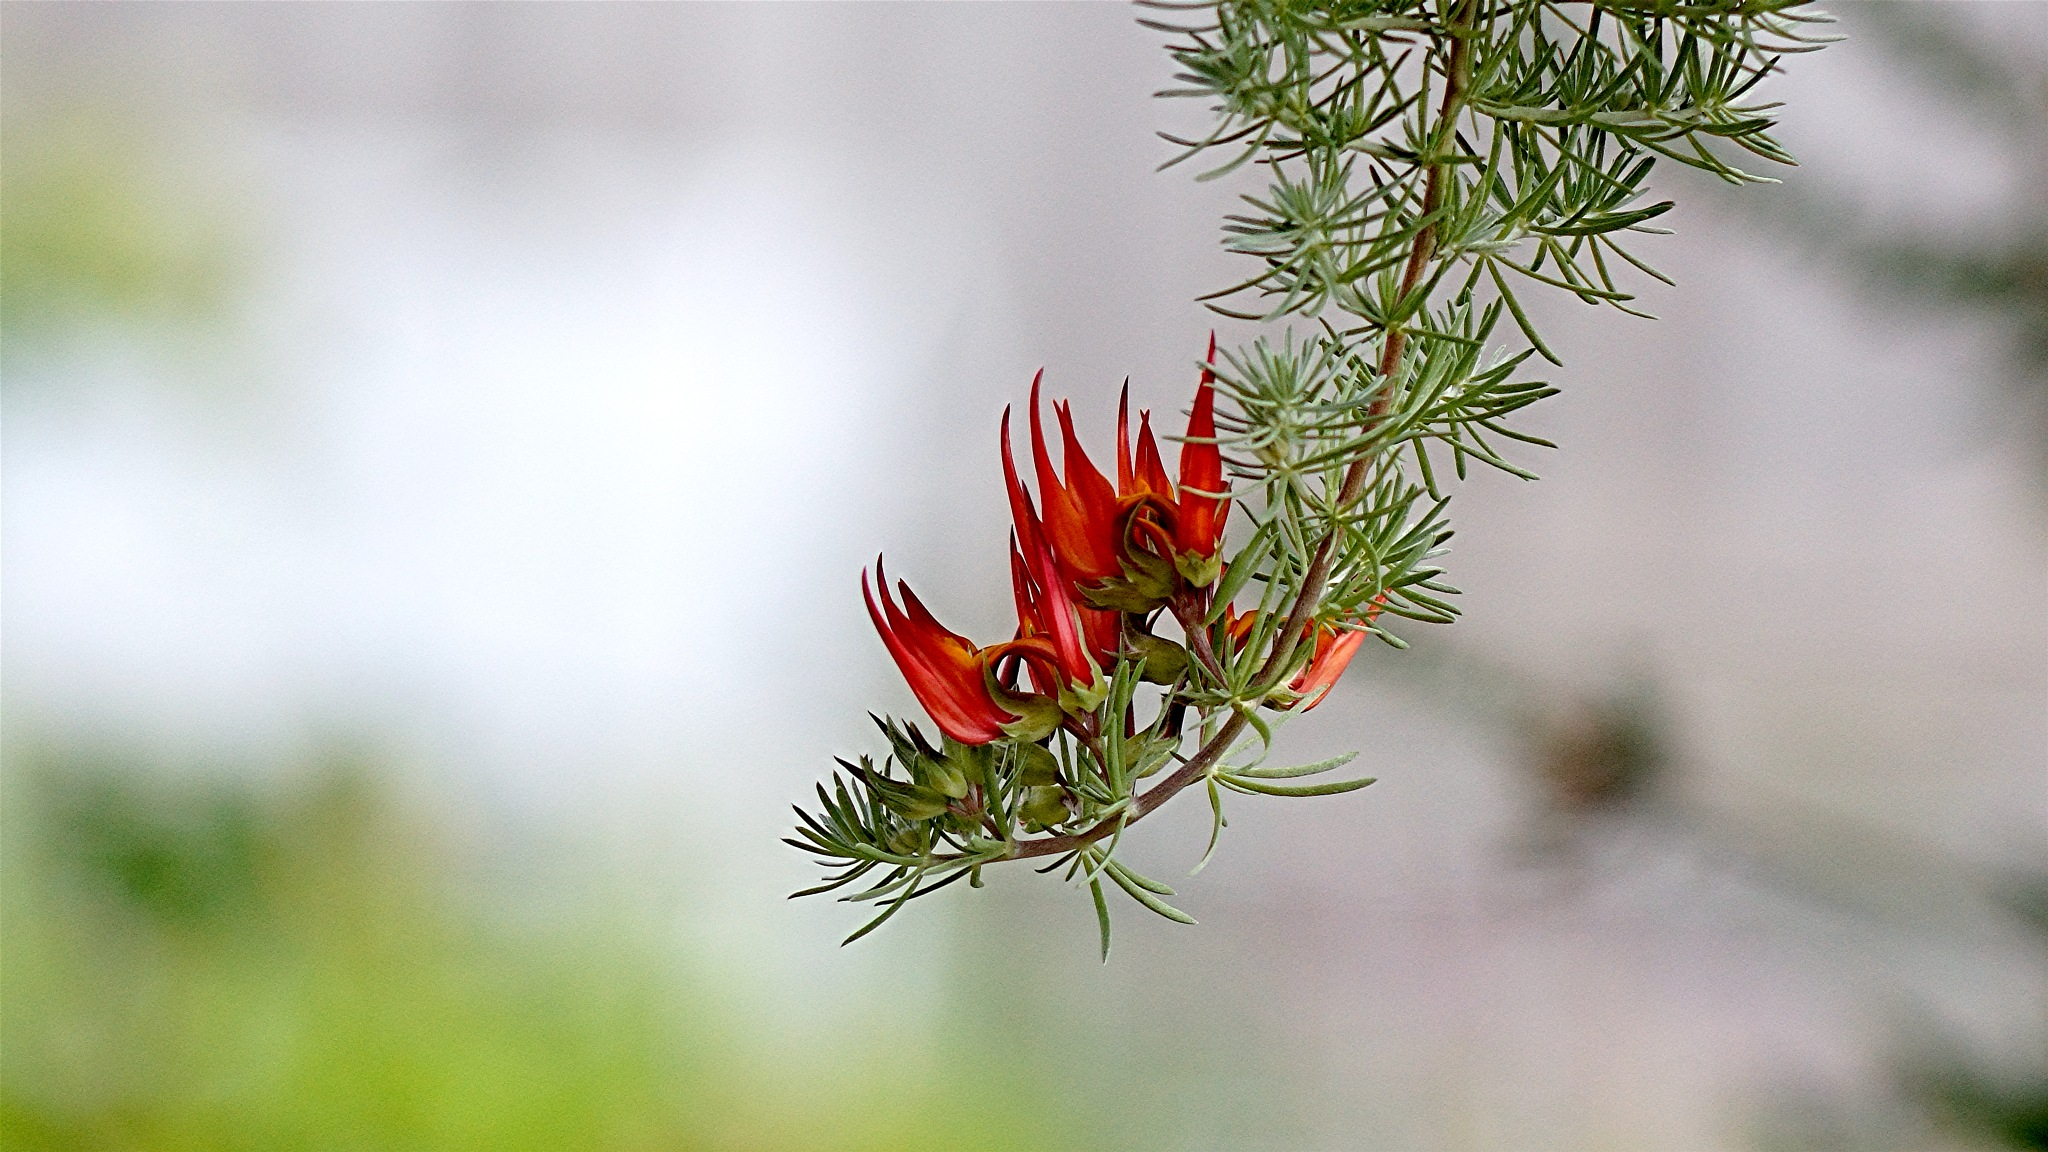 Flame like plant by Peter Schofield